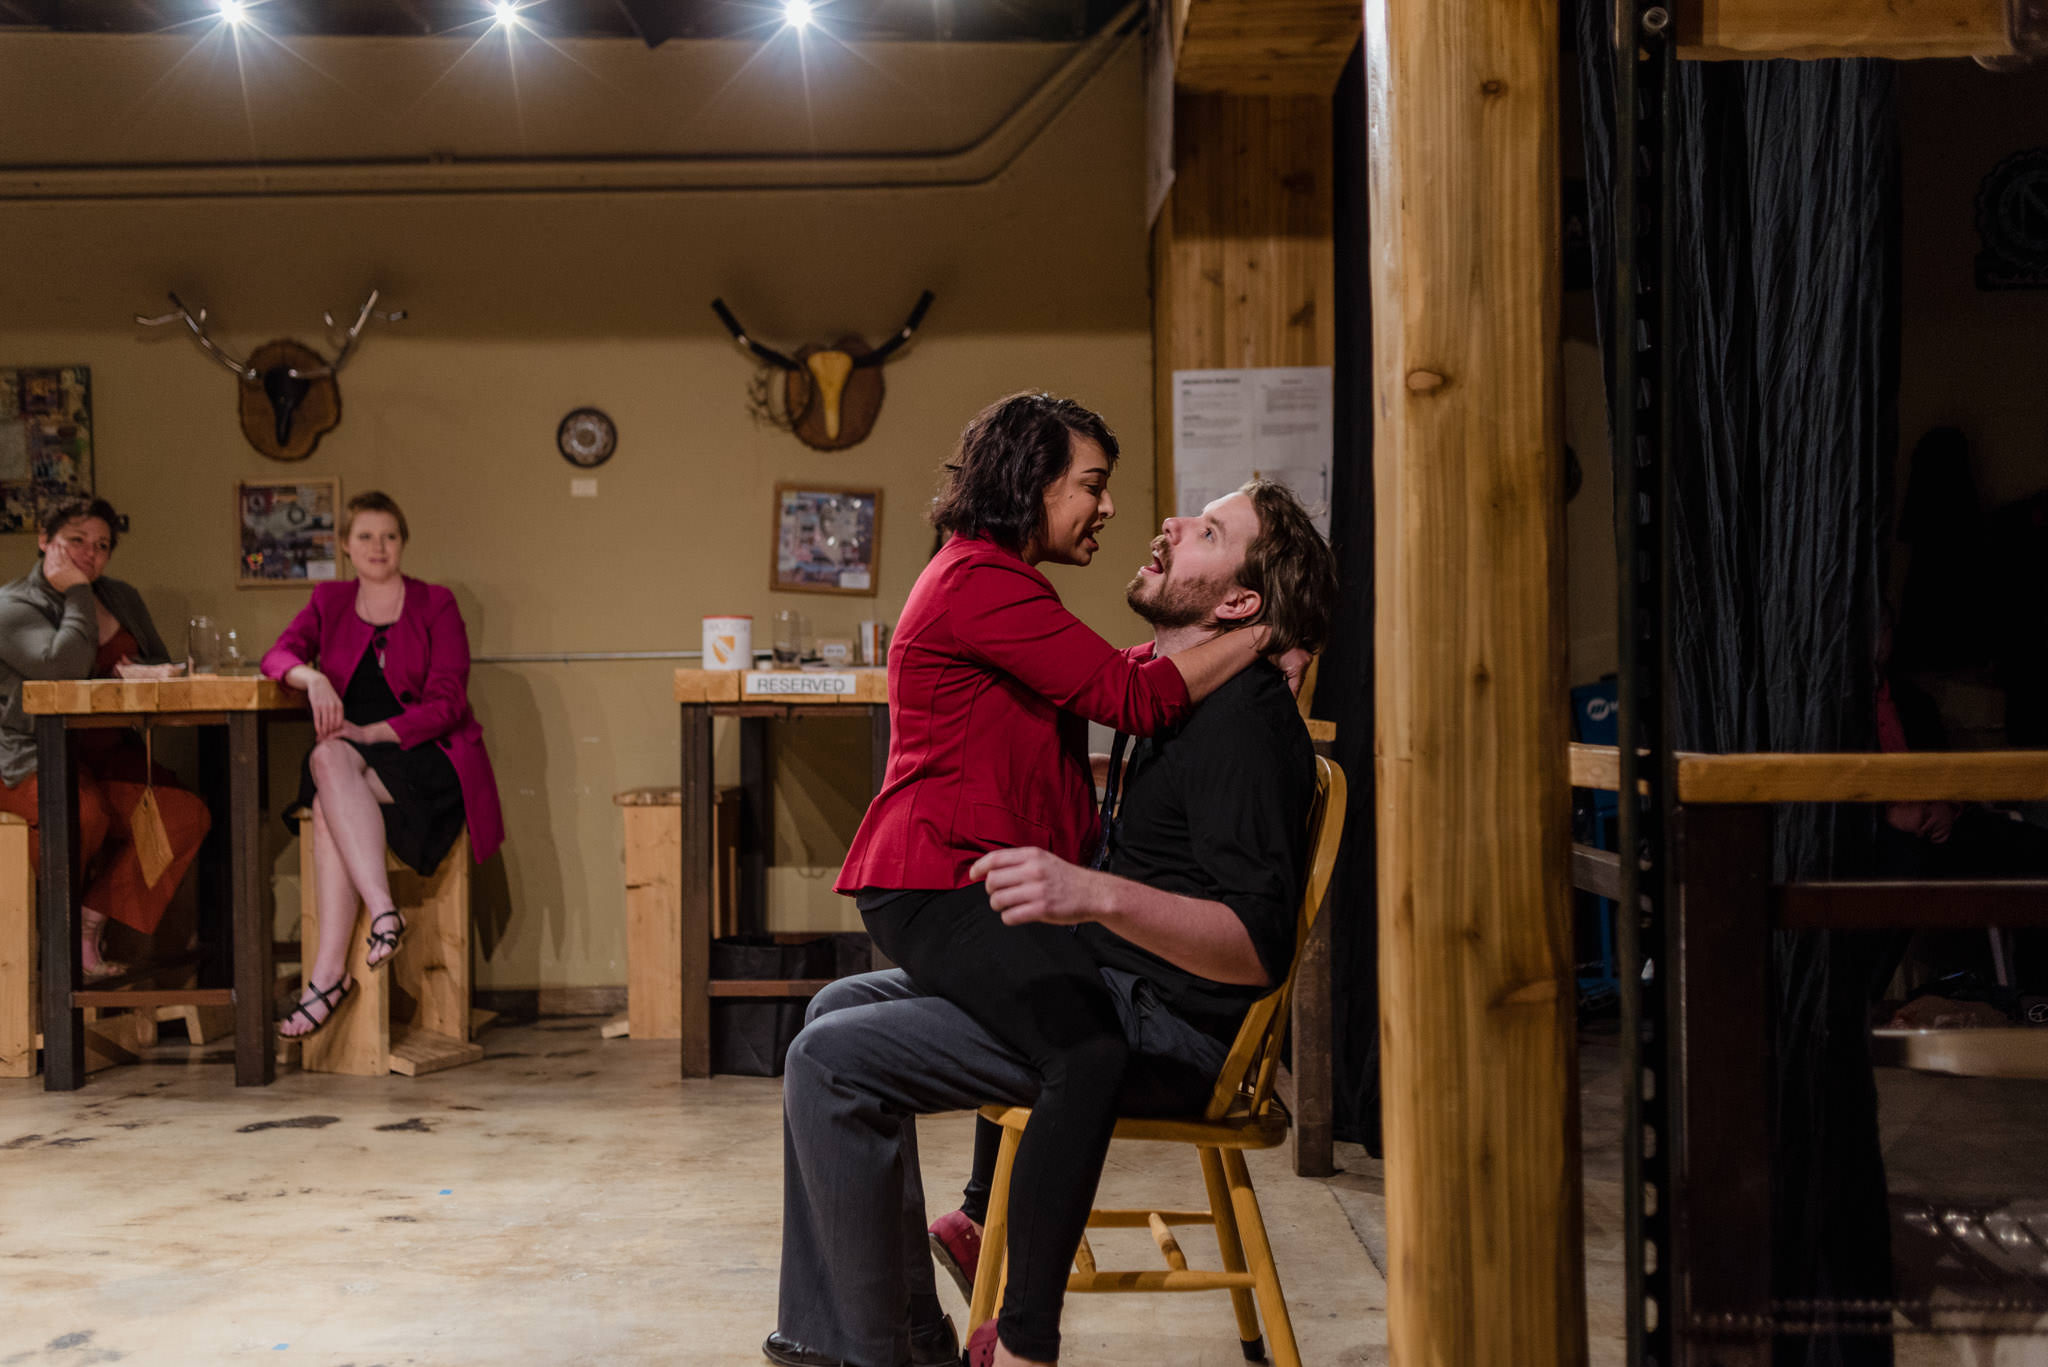 Zilla Photography - Boise Bard Players Taming Shrew Handlebar-25.jpg